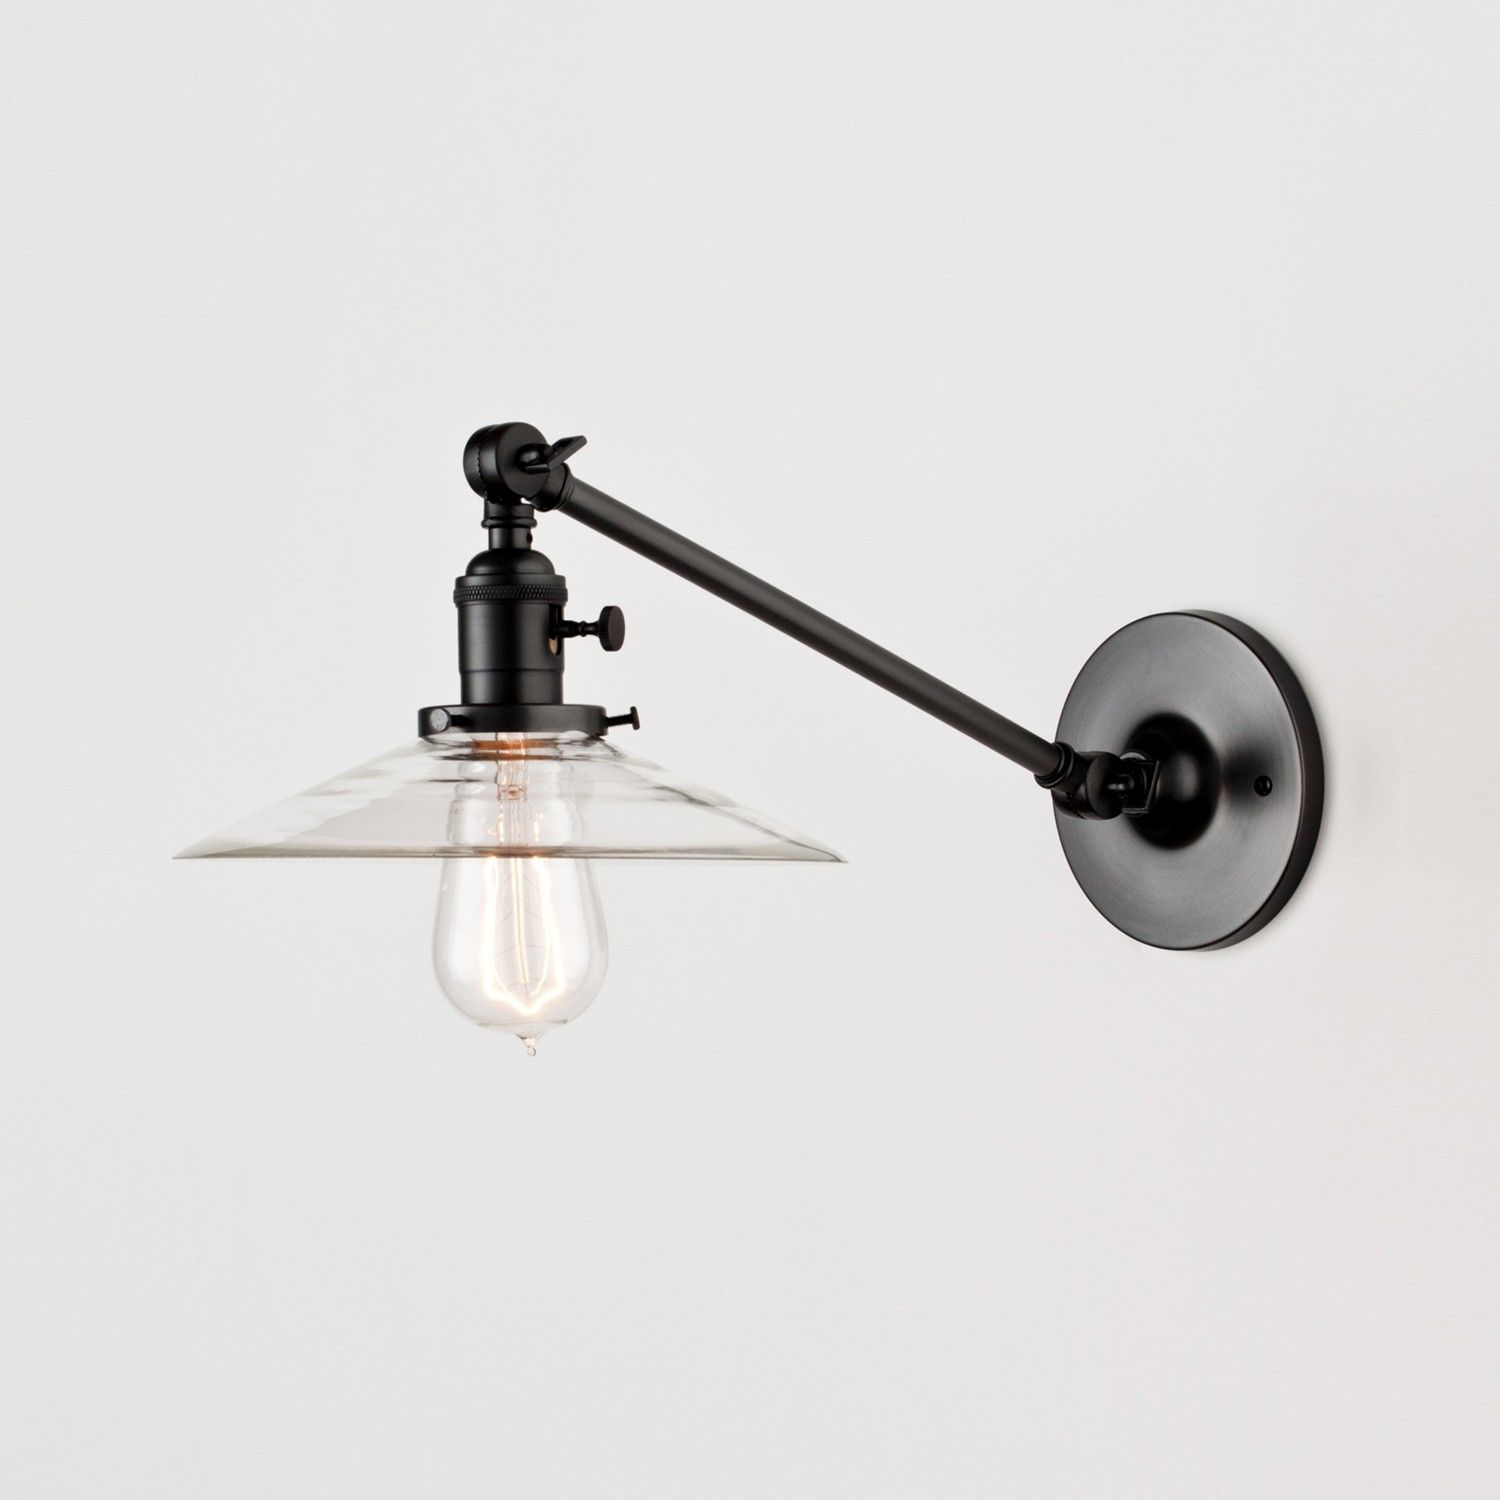 Princeton Junior Wall Sconce Light Fixture | Schoolhouse Electric ...:Princeton Junior Wall Sconce Light Fixture | Schoolhouse Electric & Supply  ...,Lighting